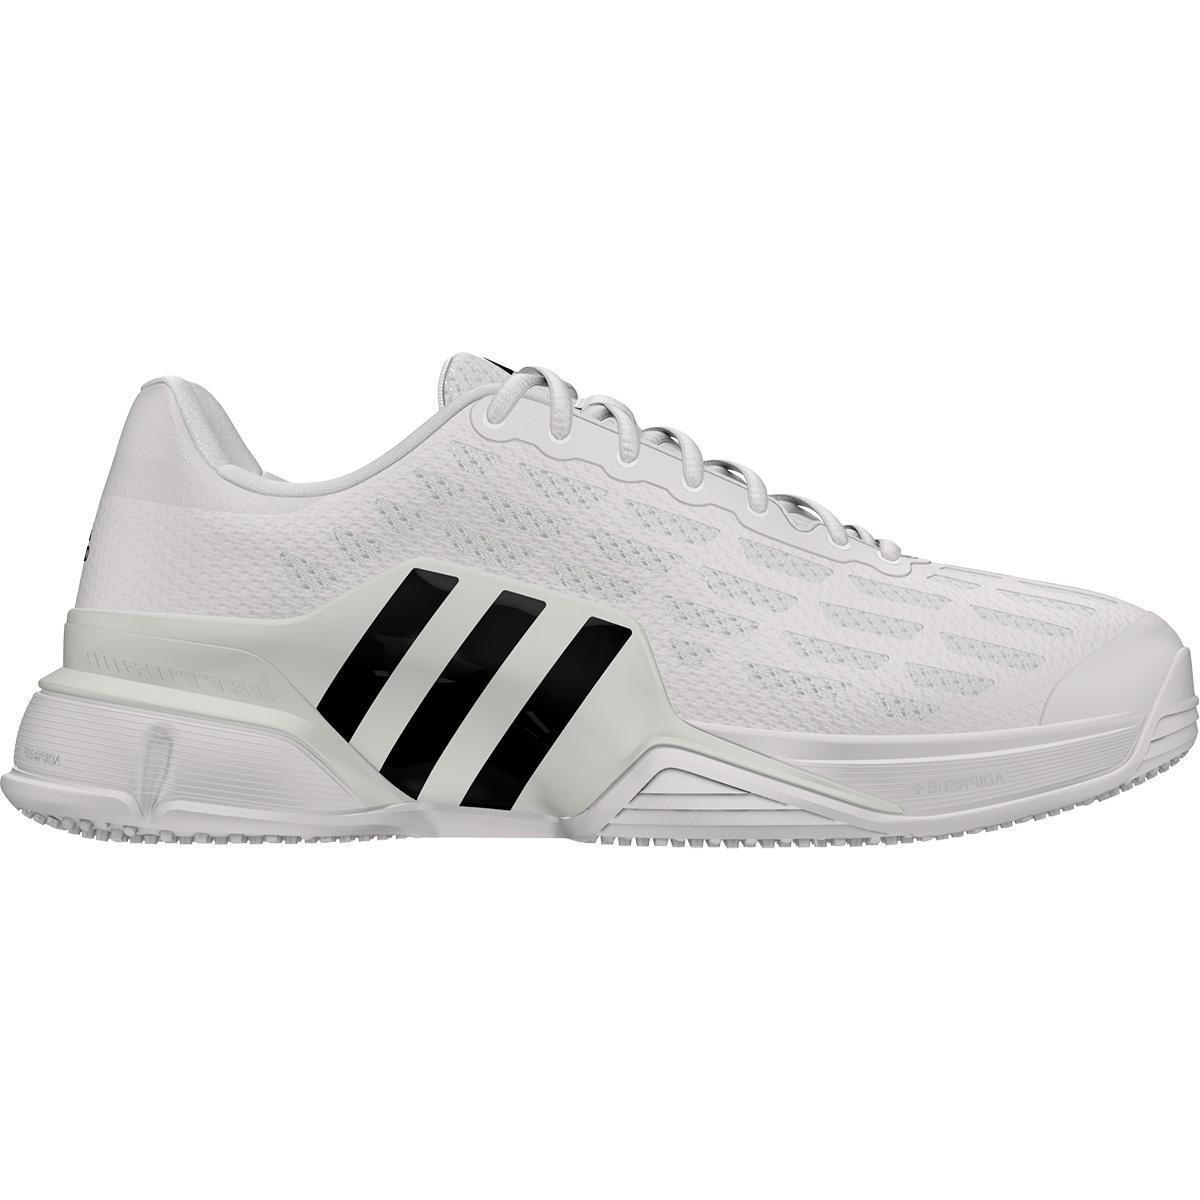 Adidas Barricade Grass Court Tennis Shoes